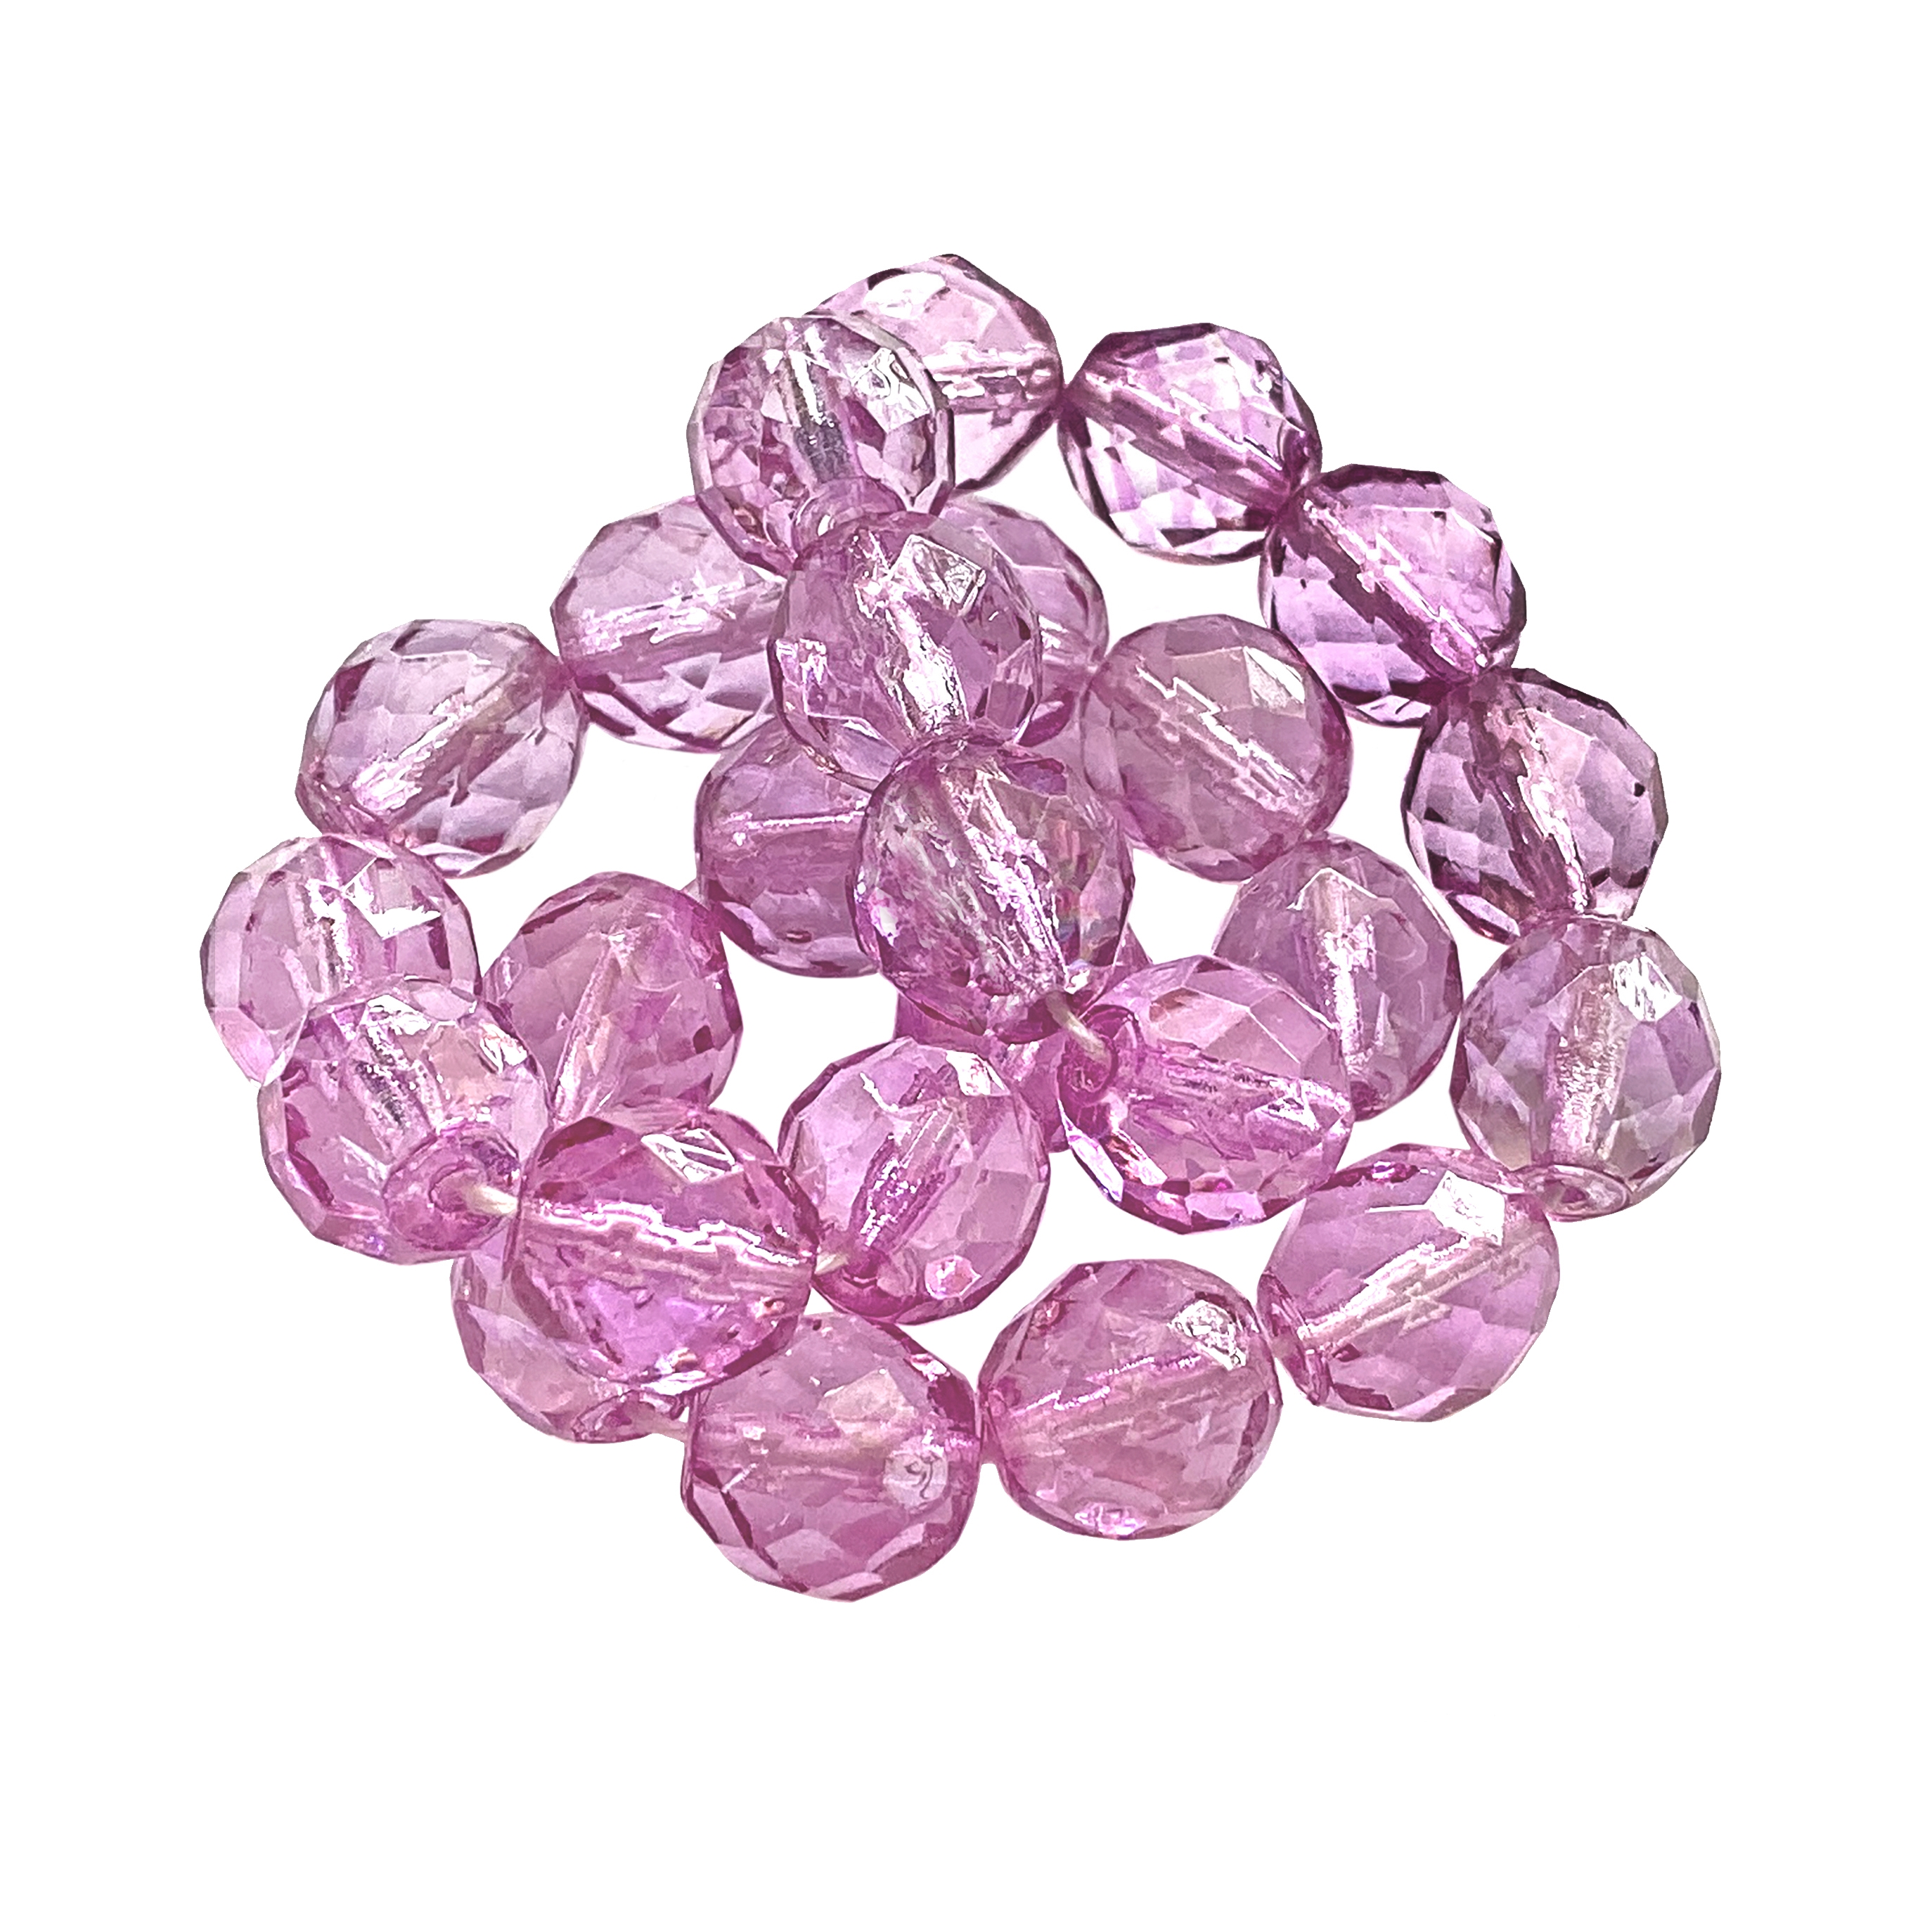 orchid pink glass beads, fire-polished beads, orchid fire-polished glass beads, glass beads, Czech, orchid, beading supplies, transparent beads, beads, crystal beads, jewelry making, jewelry supplies, vintage supplies, B'sue, round beads, 8mm, 01595